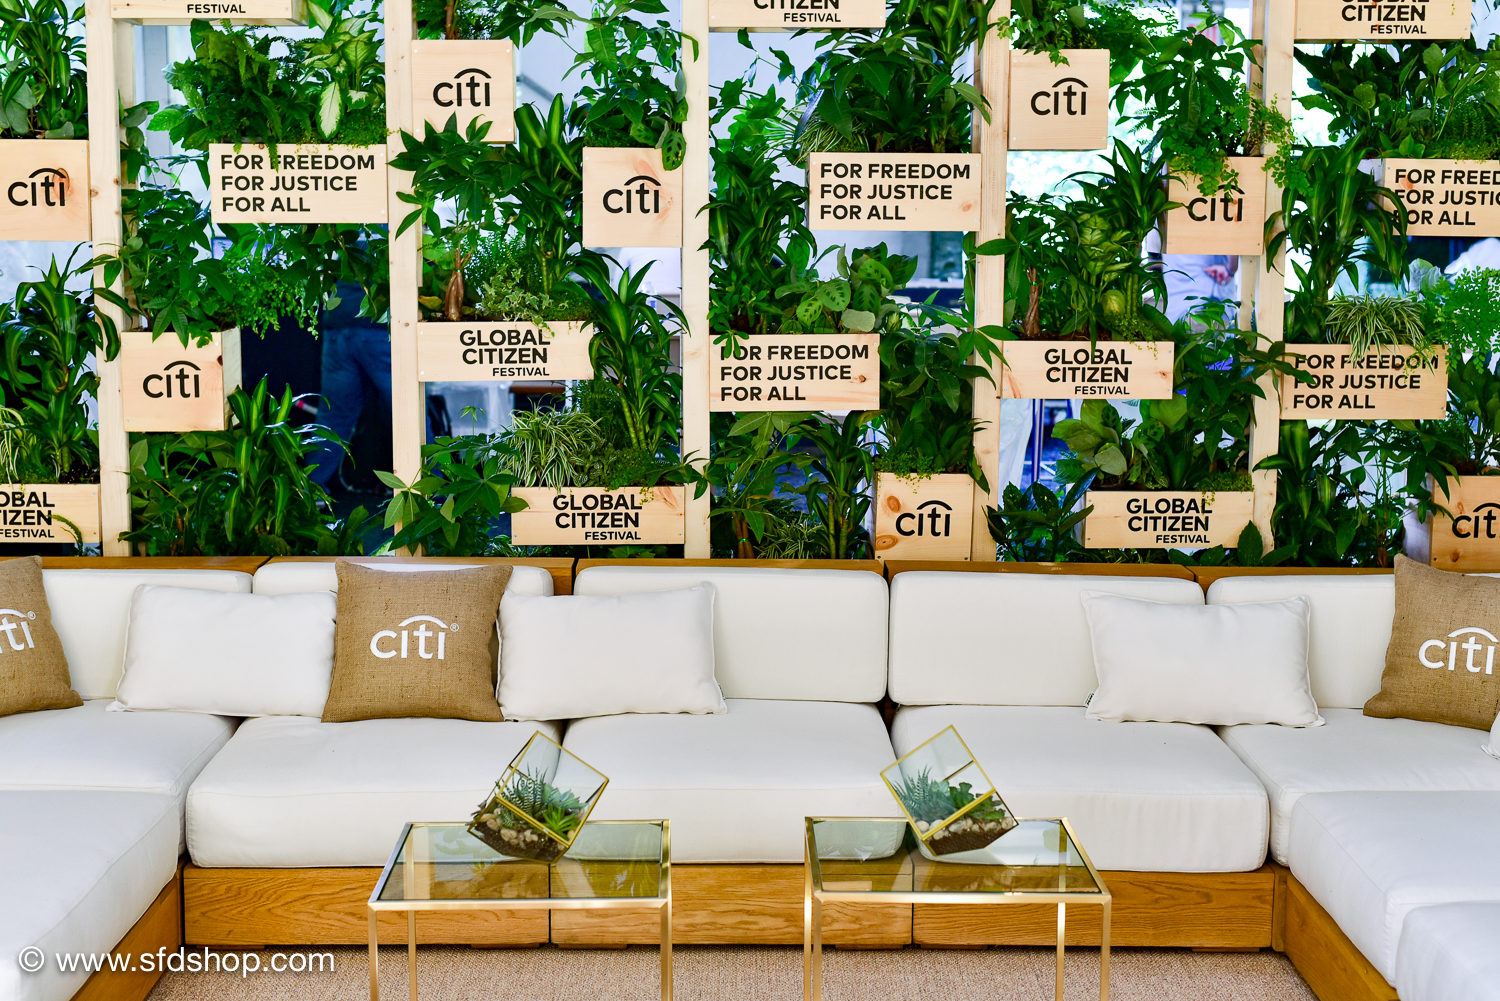 Citi+Global+Citizen+Festival+fabricated+by+SFDS-29 (1).jpg